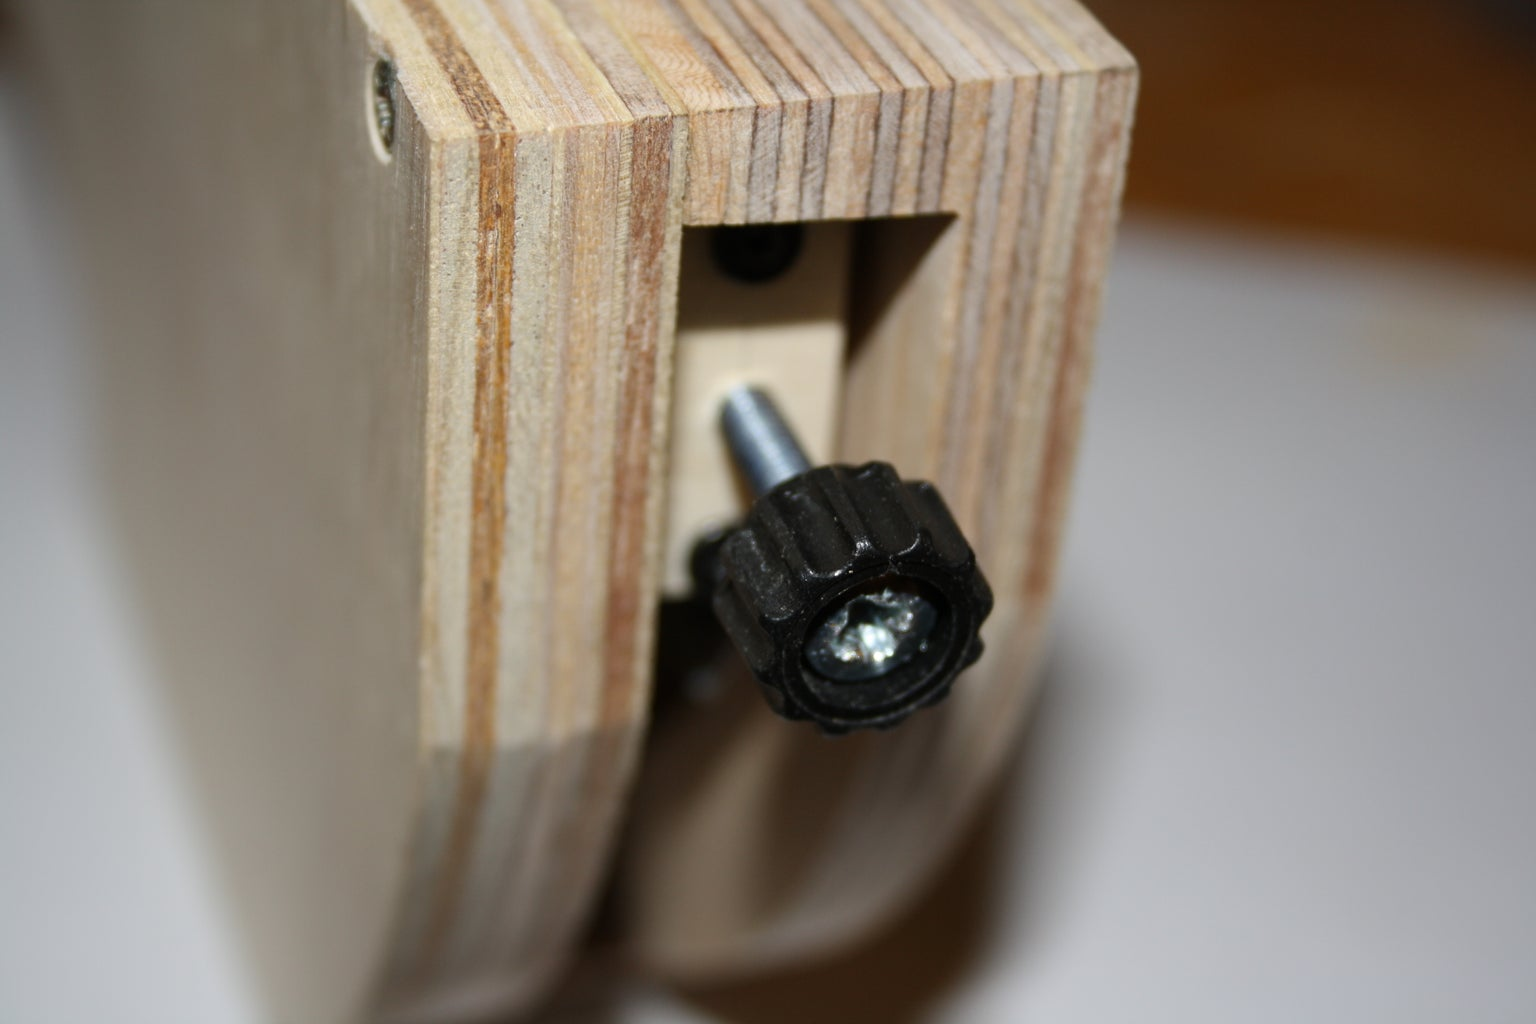 The Cutting Blade Assembly Adjustment Knob.